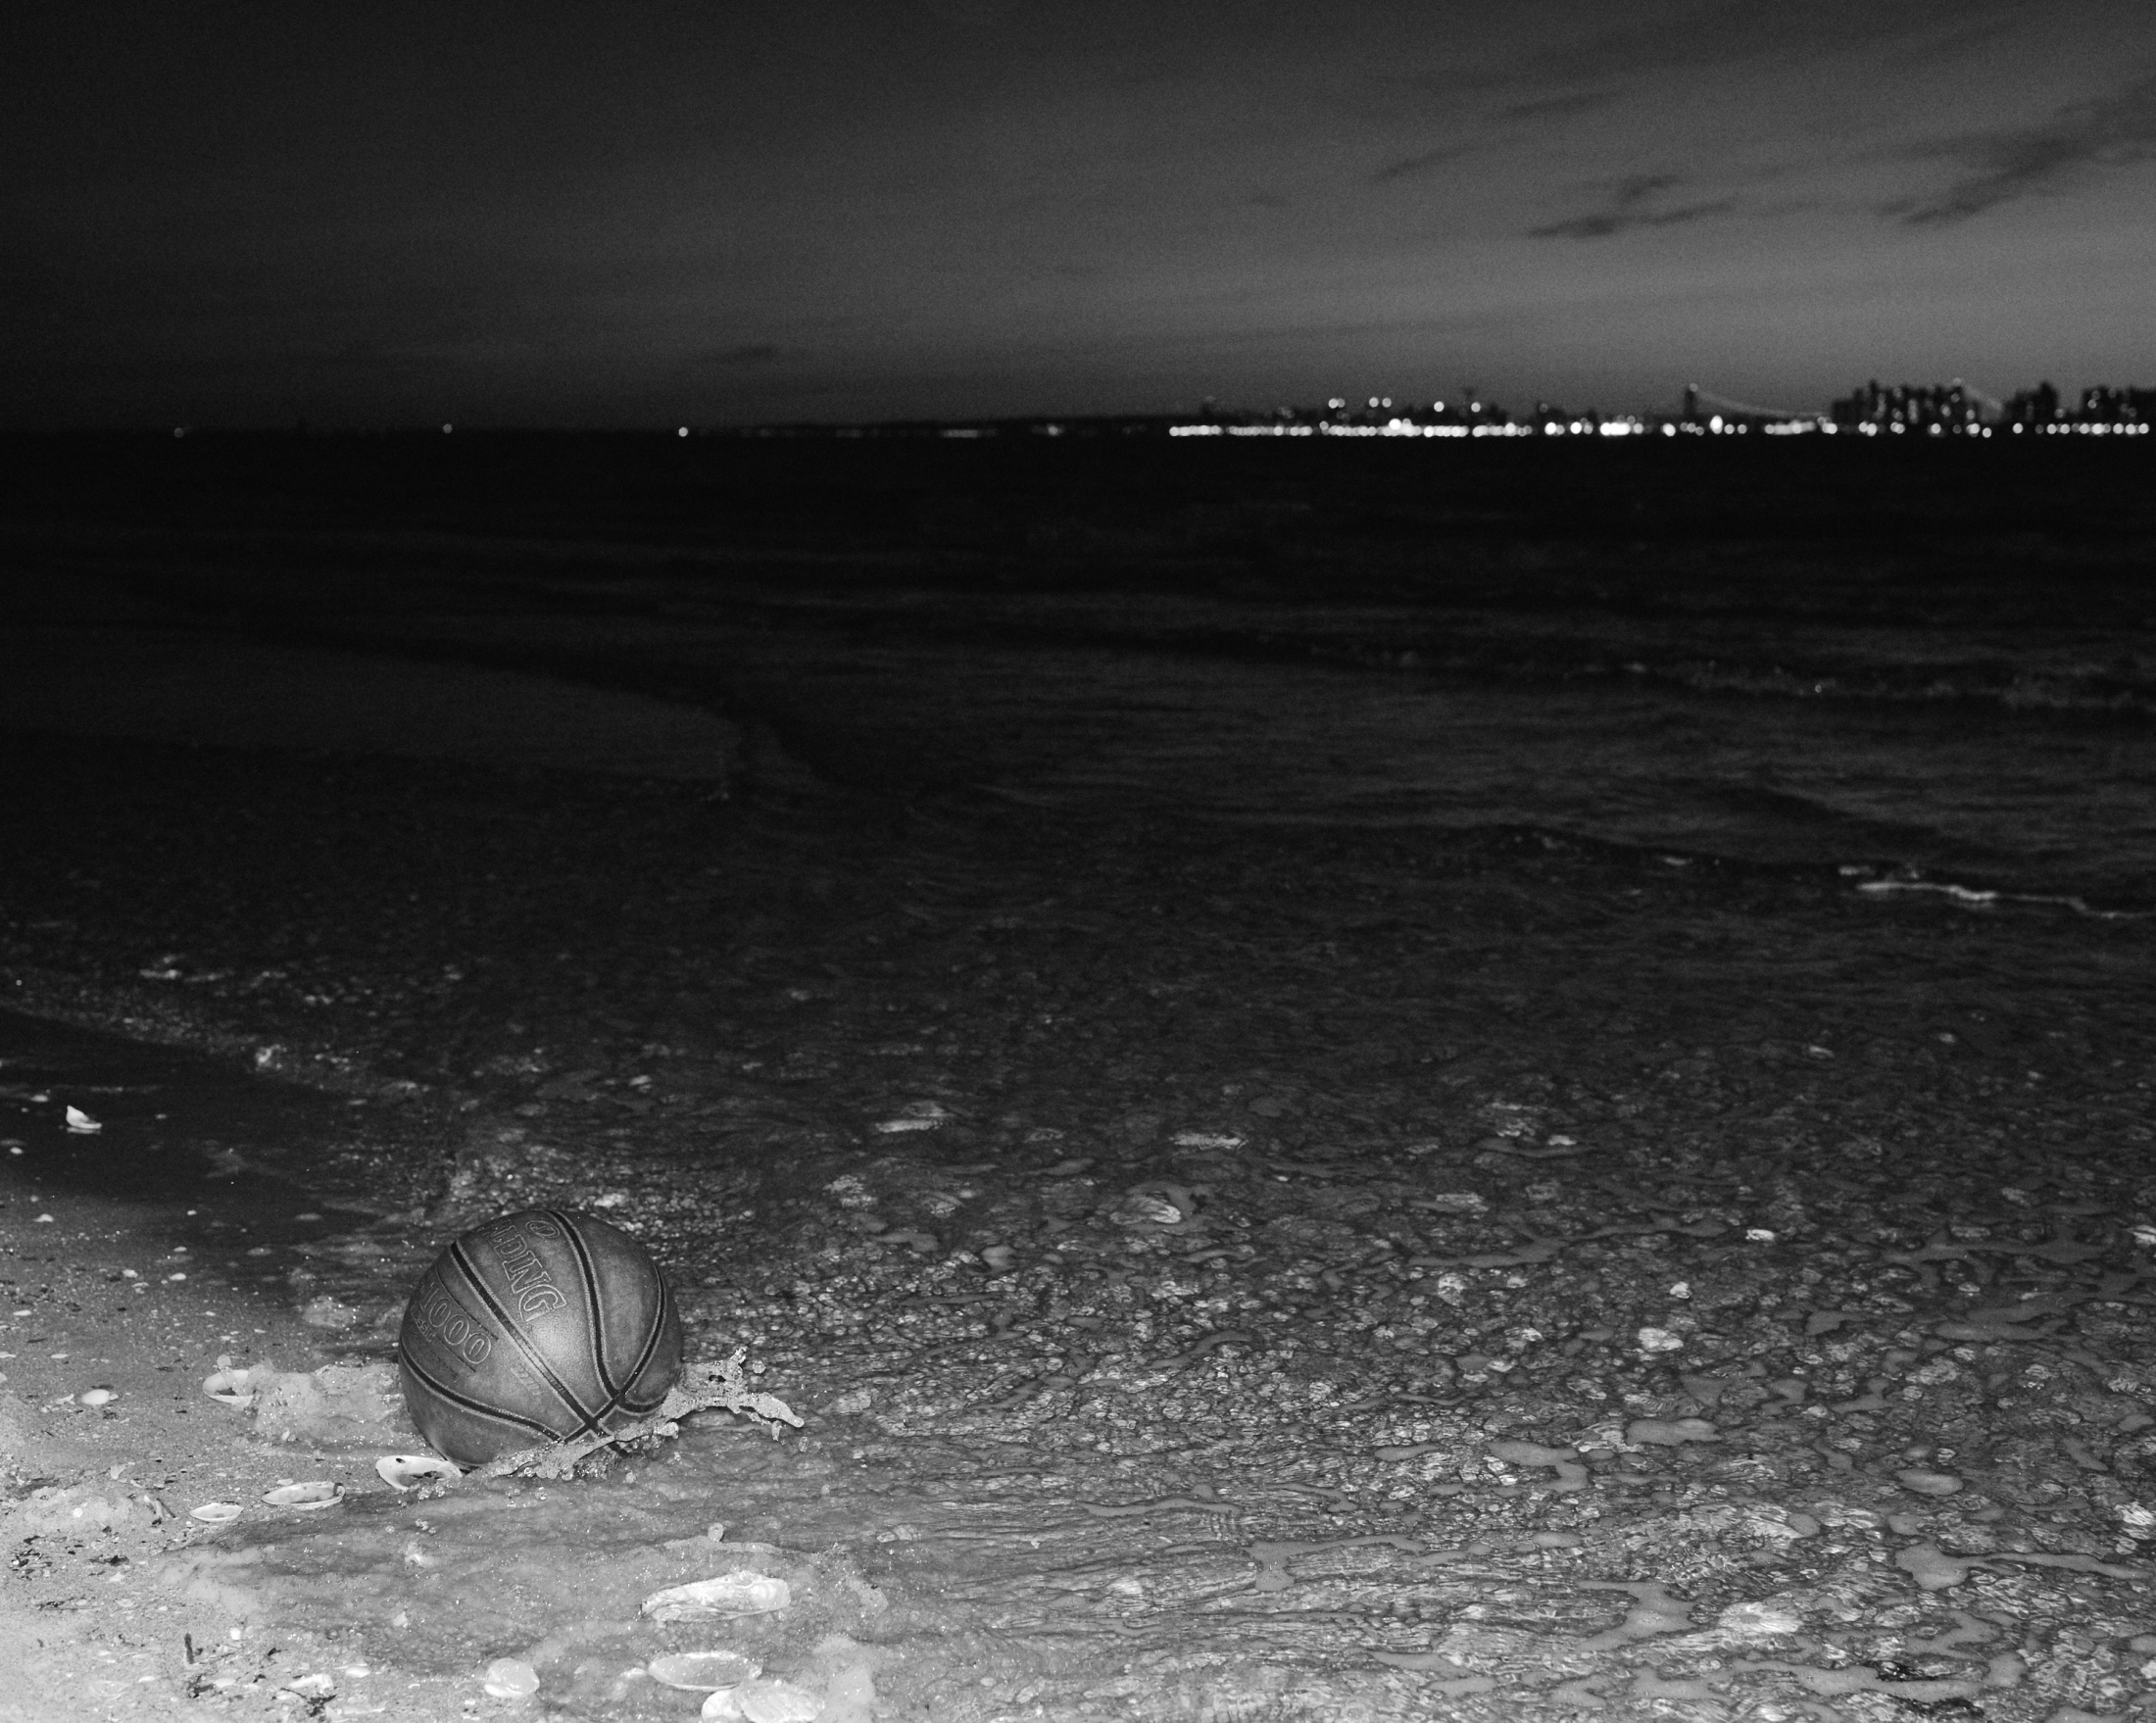 A castaway basketball floats on the shore of 'Breezy Point' in the western side of Rockaway beach, with a view to Fort Hamilton area in Brooklyn. New York, 2019.